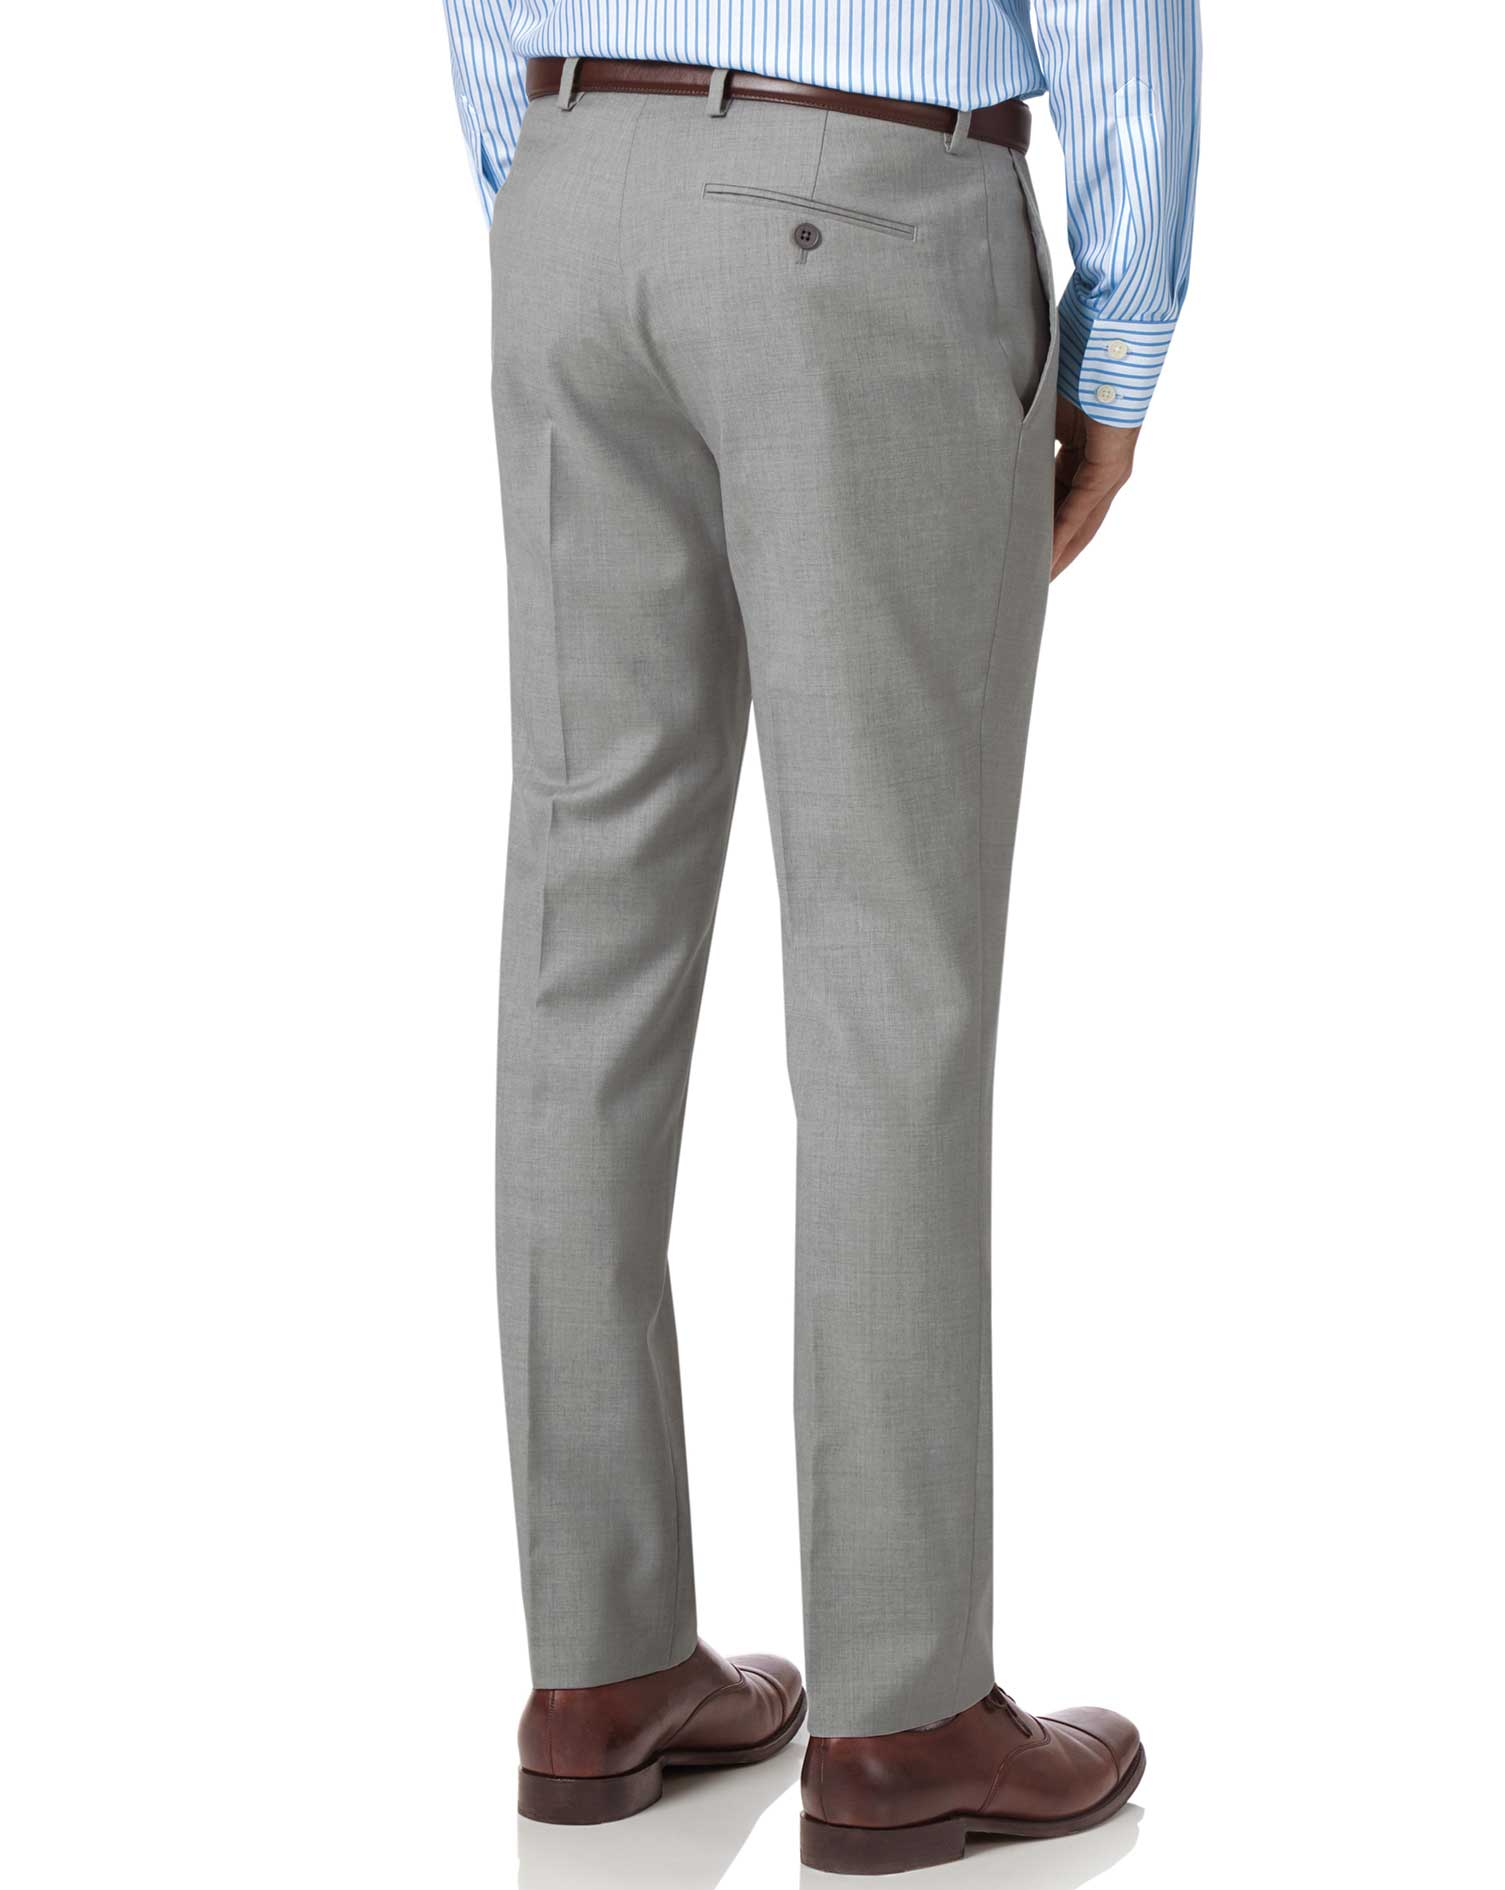 Light grey slim fit twill business suit pants